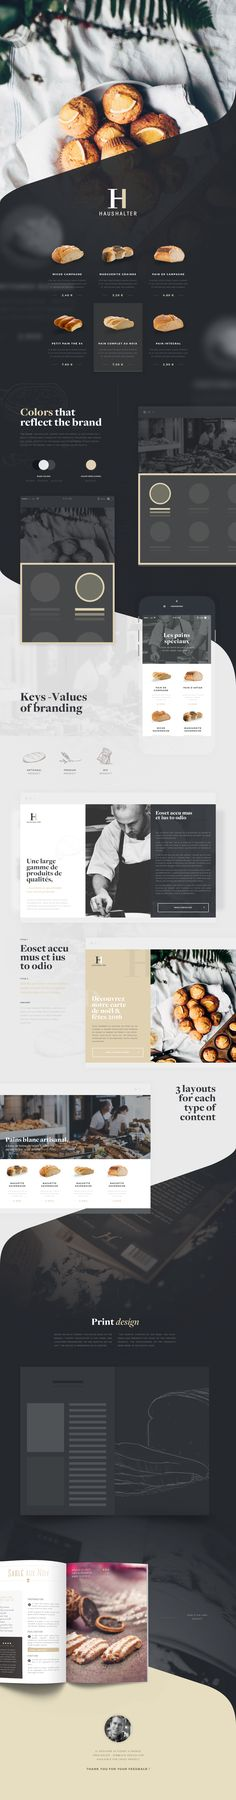 See more about this project on Behance: https://www.behance.net/gallery/47107189/Branding-French-Bakery-UI-Print-Design Julien Fischer - UI designer in Sydney and France - Freelancer Email: contact@jaja-design.com  Instagram: @jajadesign Facebook : https://www.facebook.com/jajadesigner/  Thank you for your feedback! Now available, email: job@jaja-design.com Thank you for your feedback !